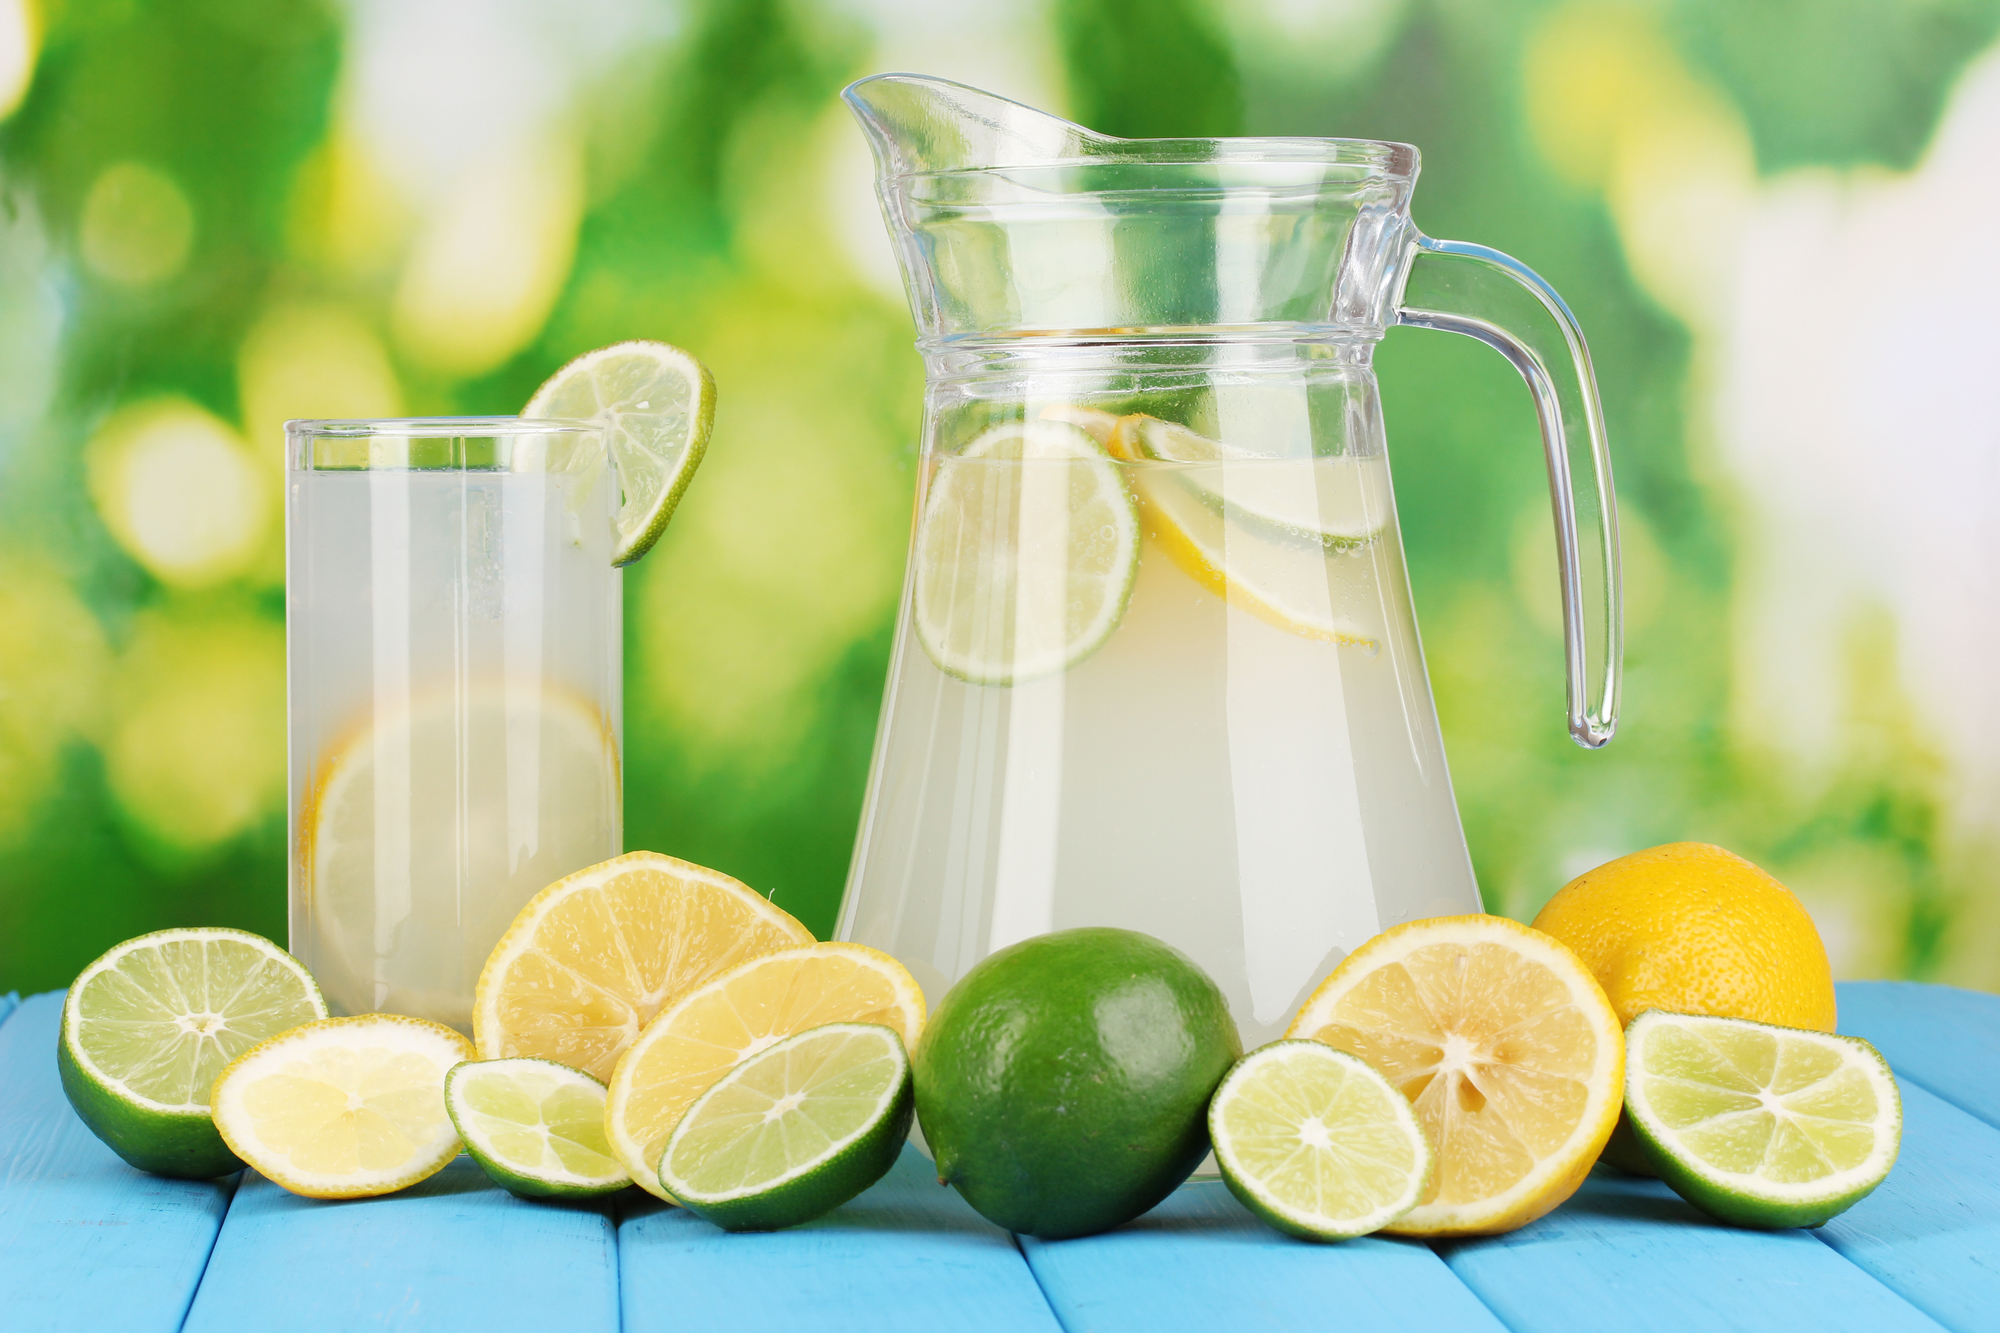 A Refreshing Lemon-Limeade to Beat the Heat